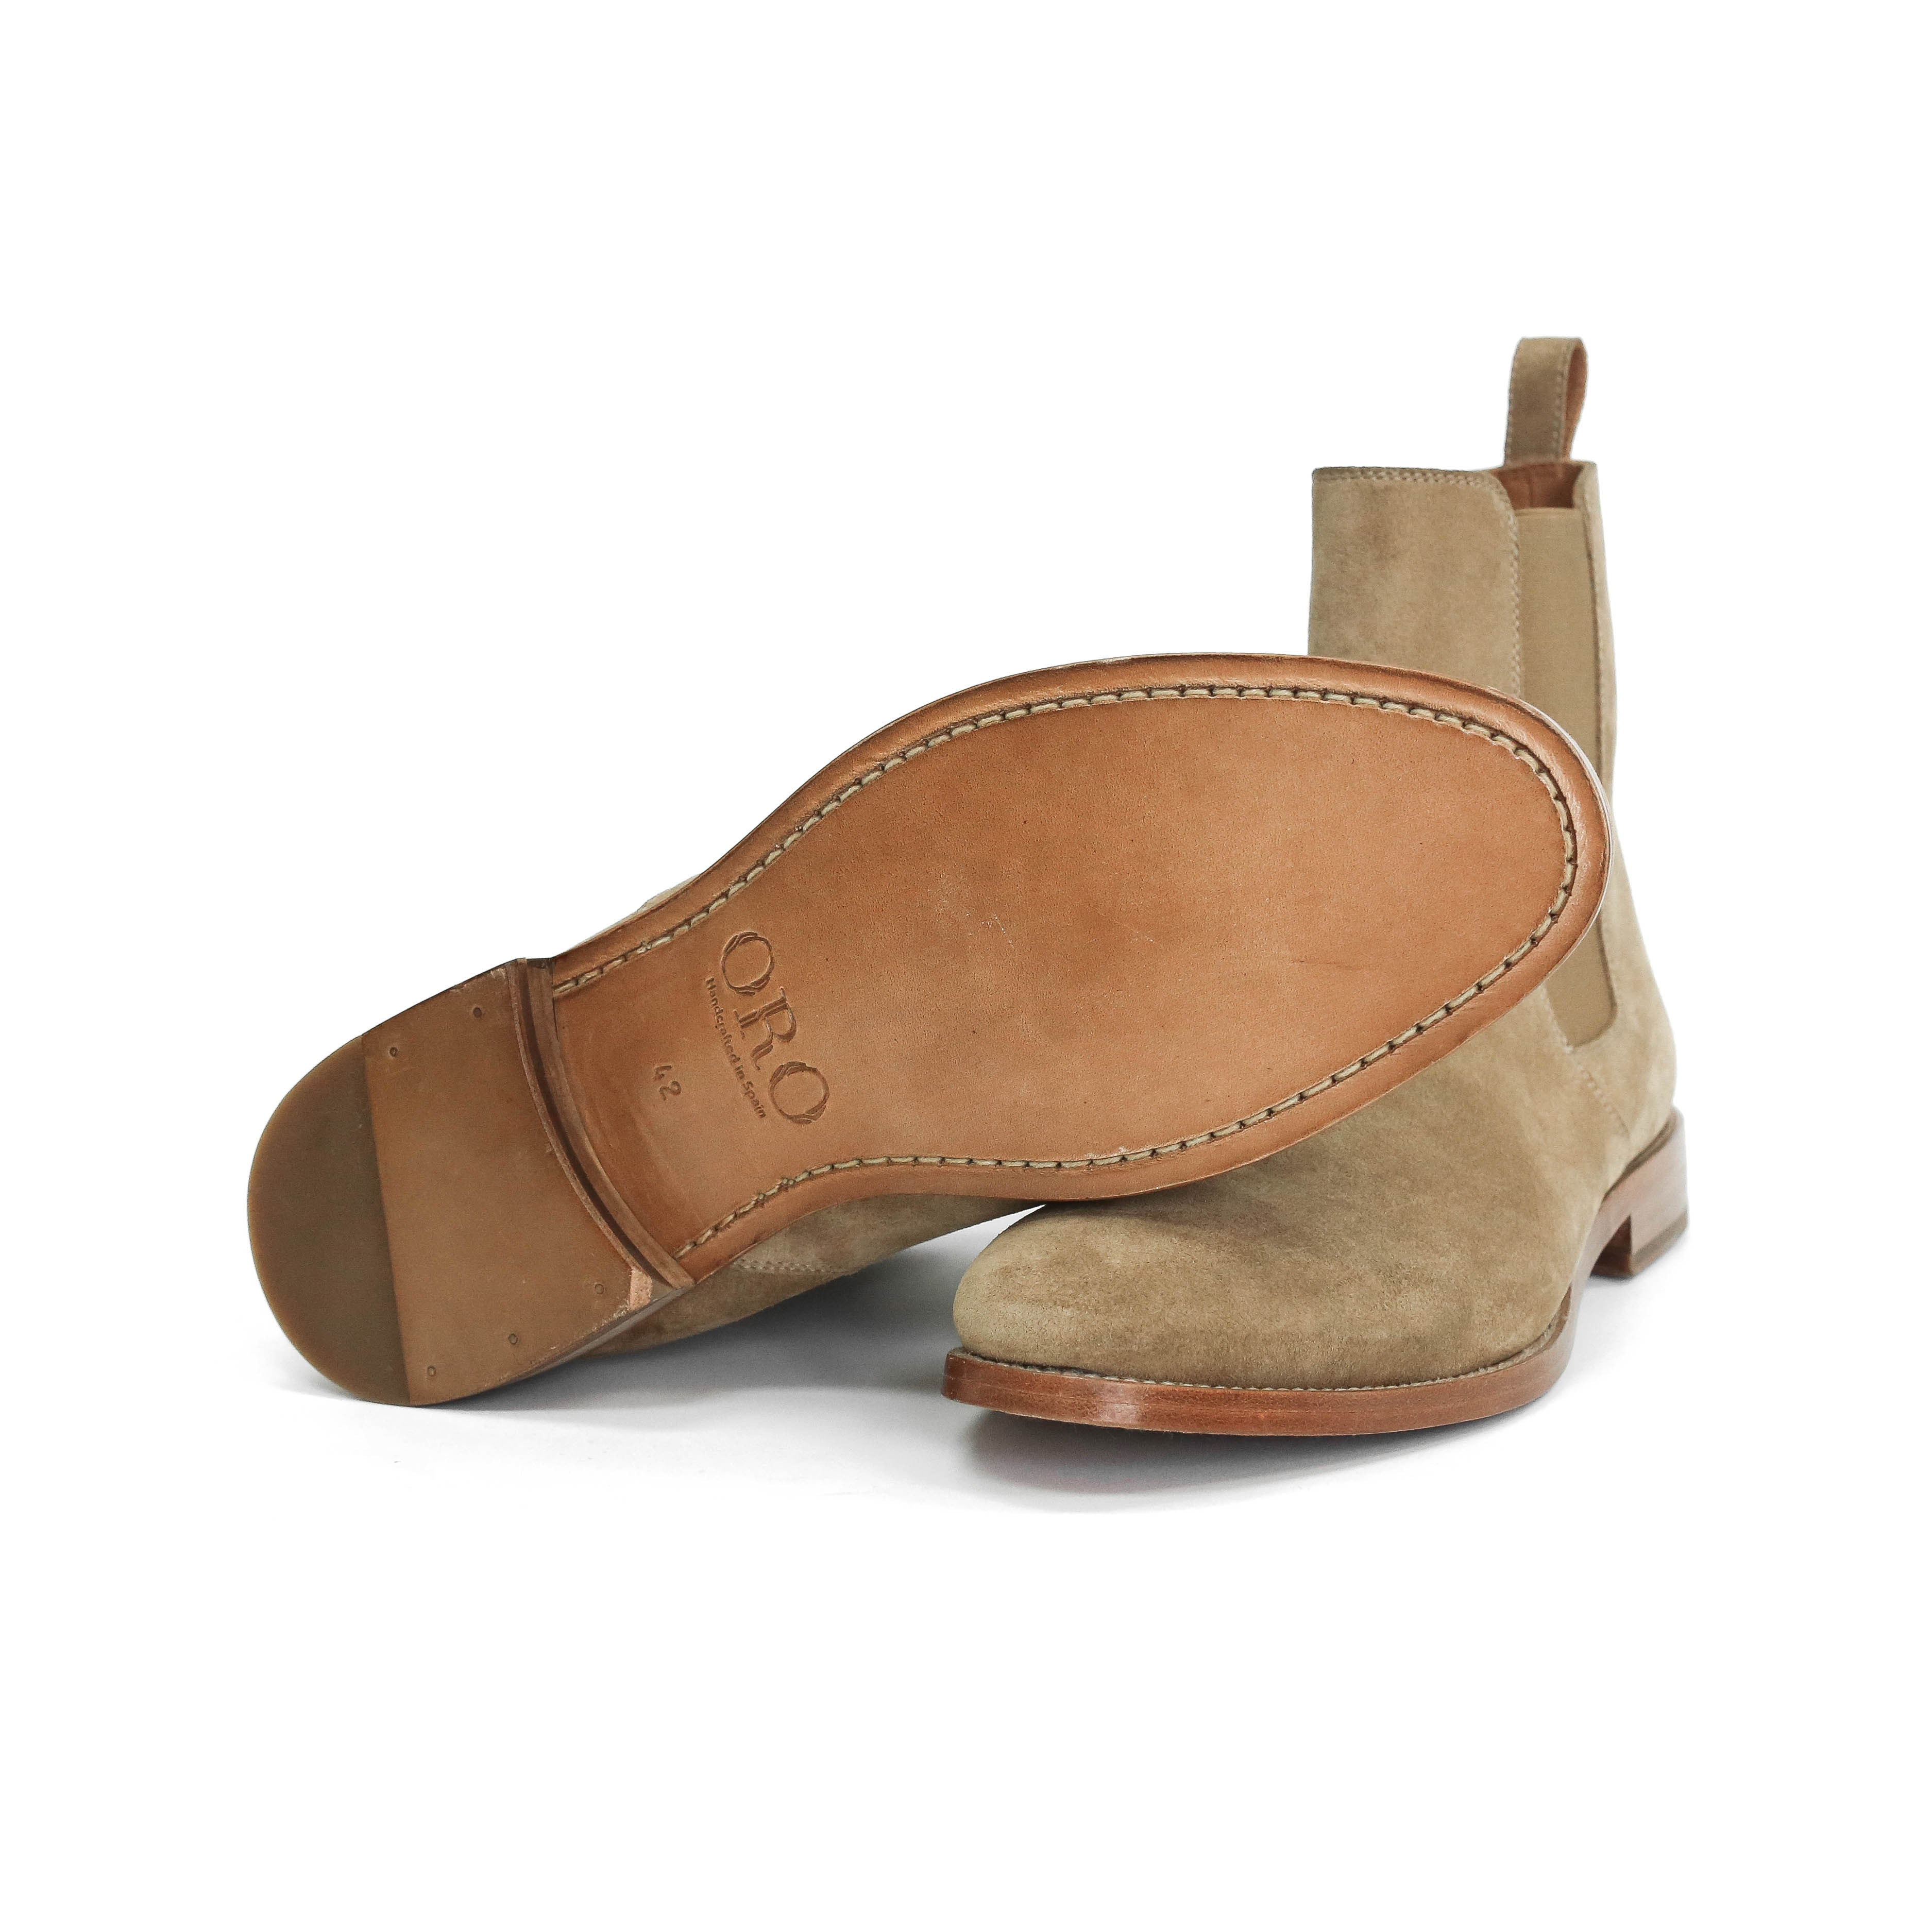 Classic Tan Chelsea Boot Look 2